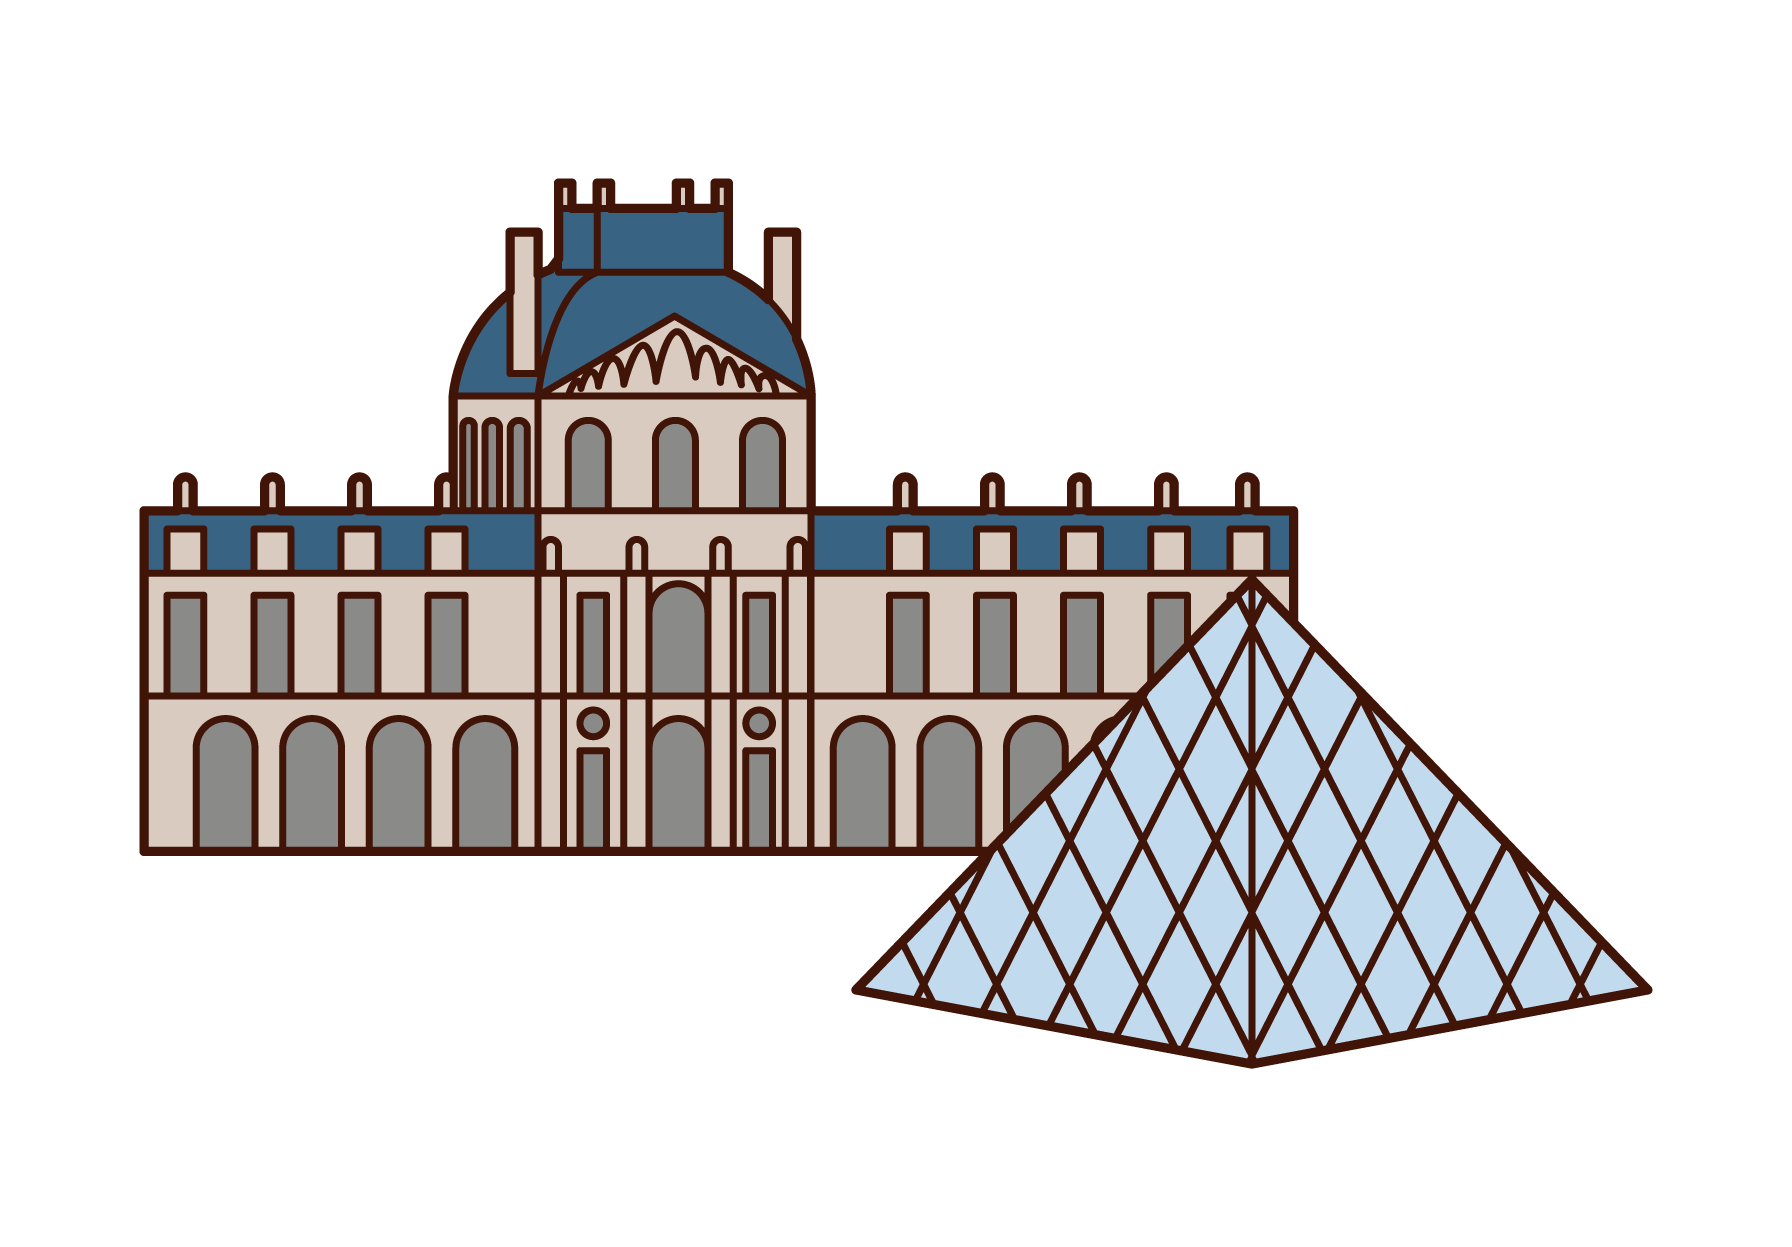 Illustrations of the Louvre Museum